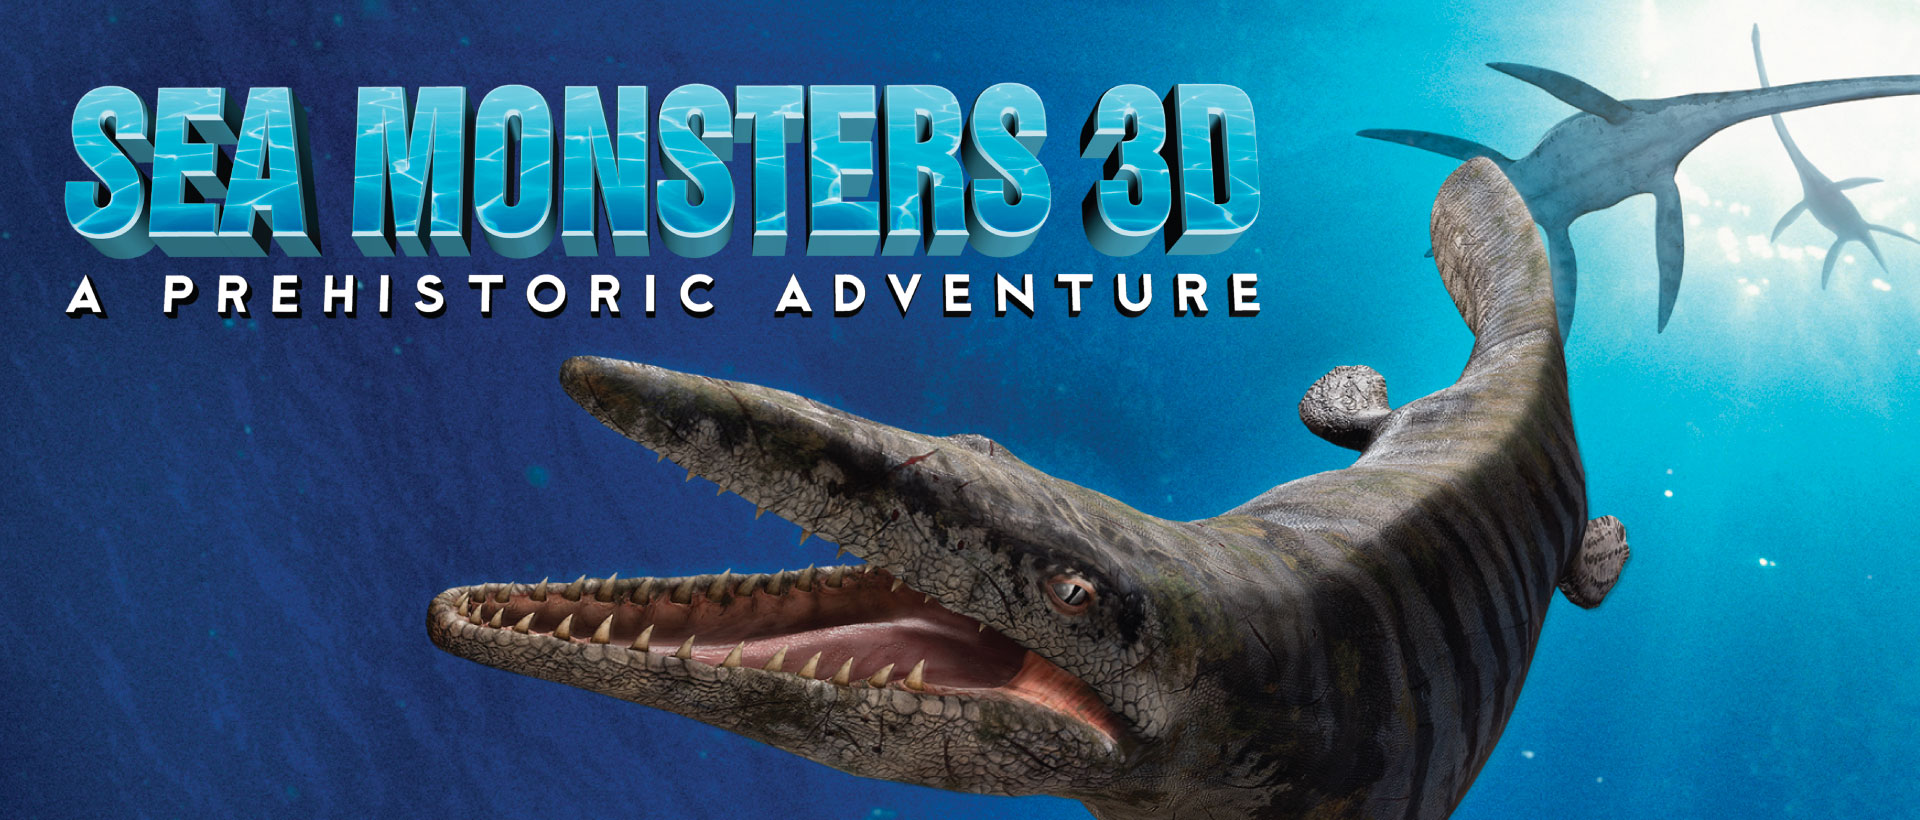 Sea Monsters 3D A Prehistoric Adventure movie poster with large mosasaur with large teeth under water.